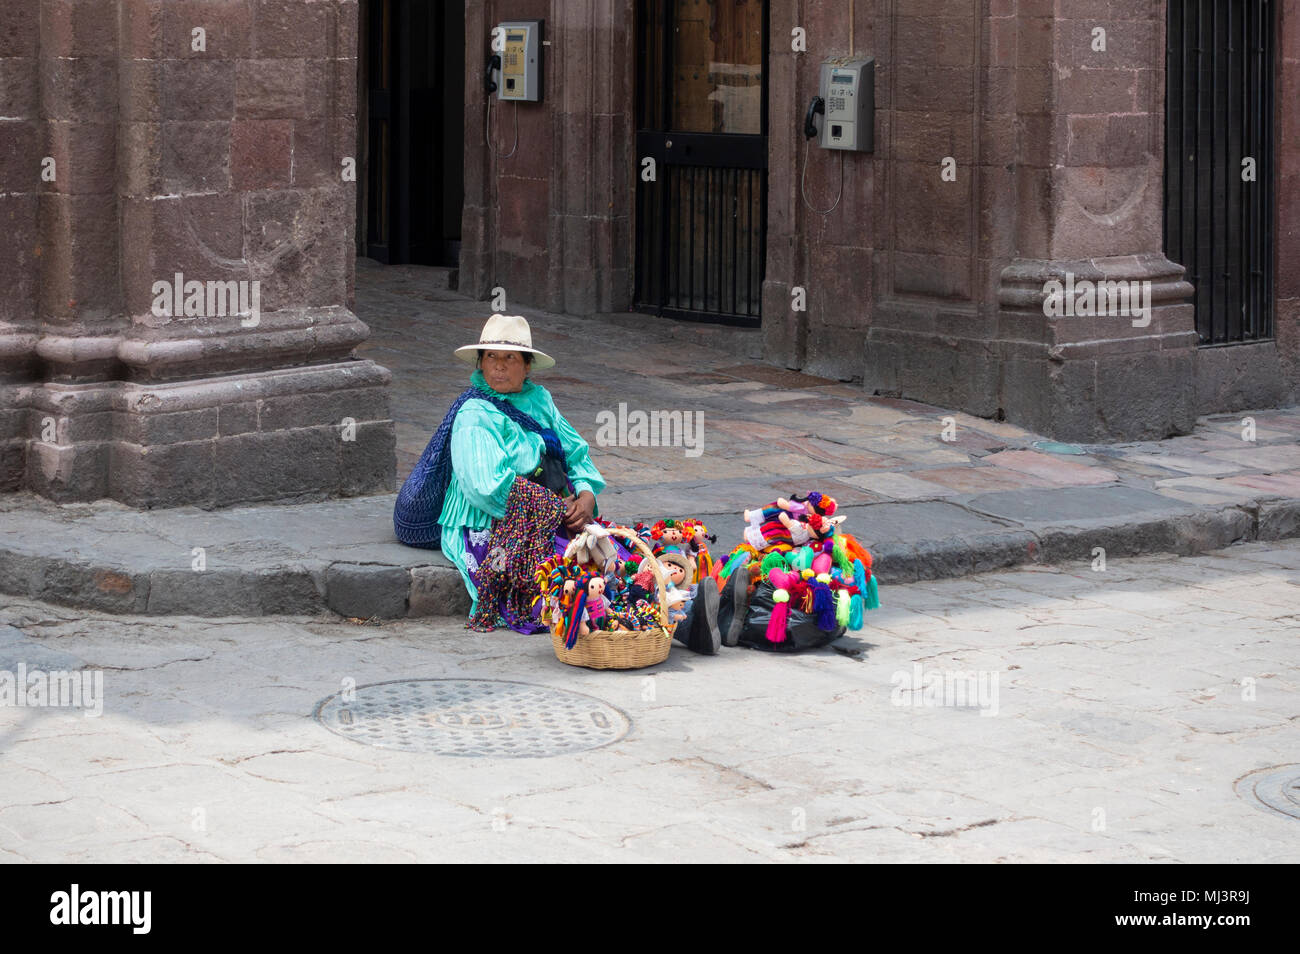 Indian woman in straw hat selling Mexican children's dolls - Stock Image